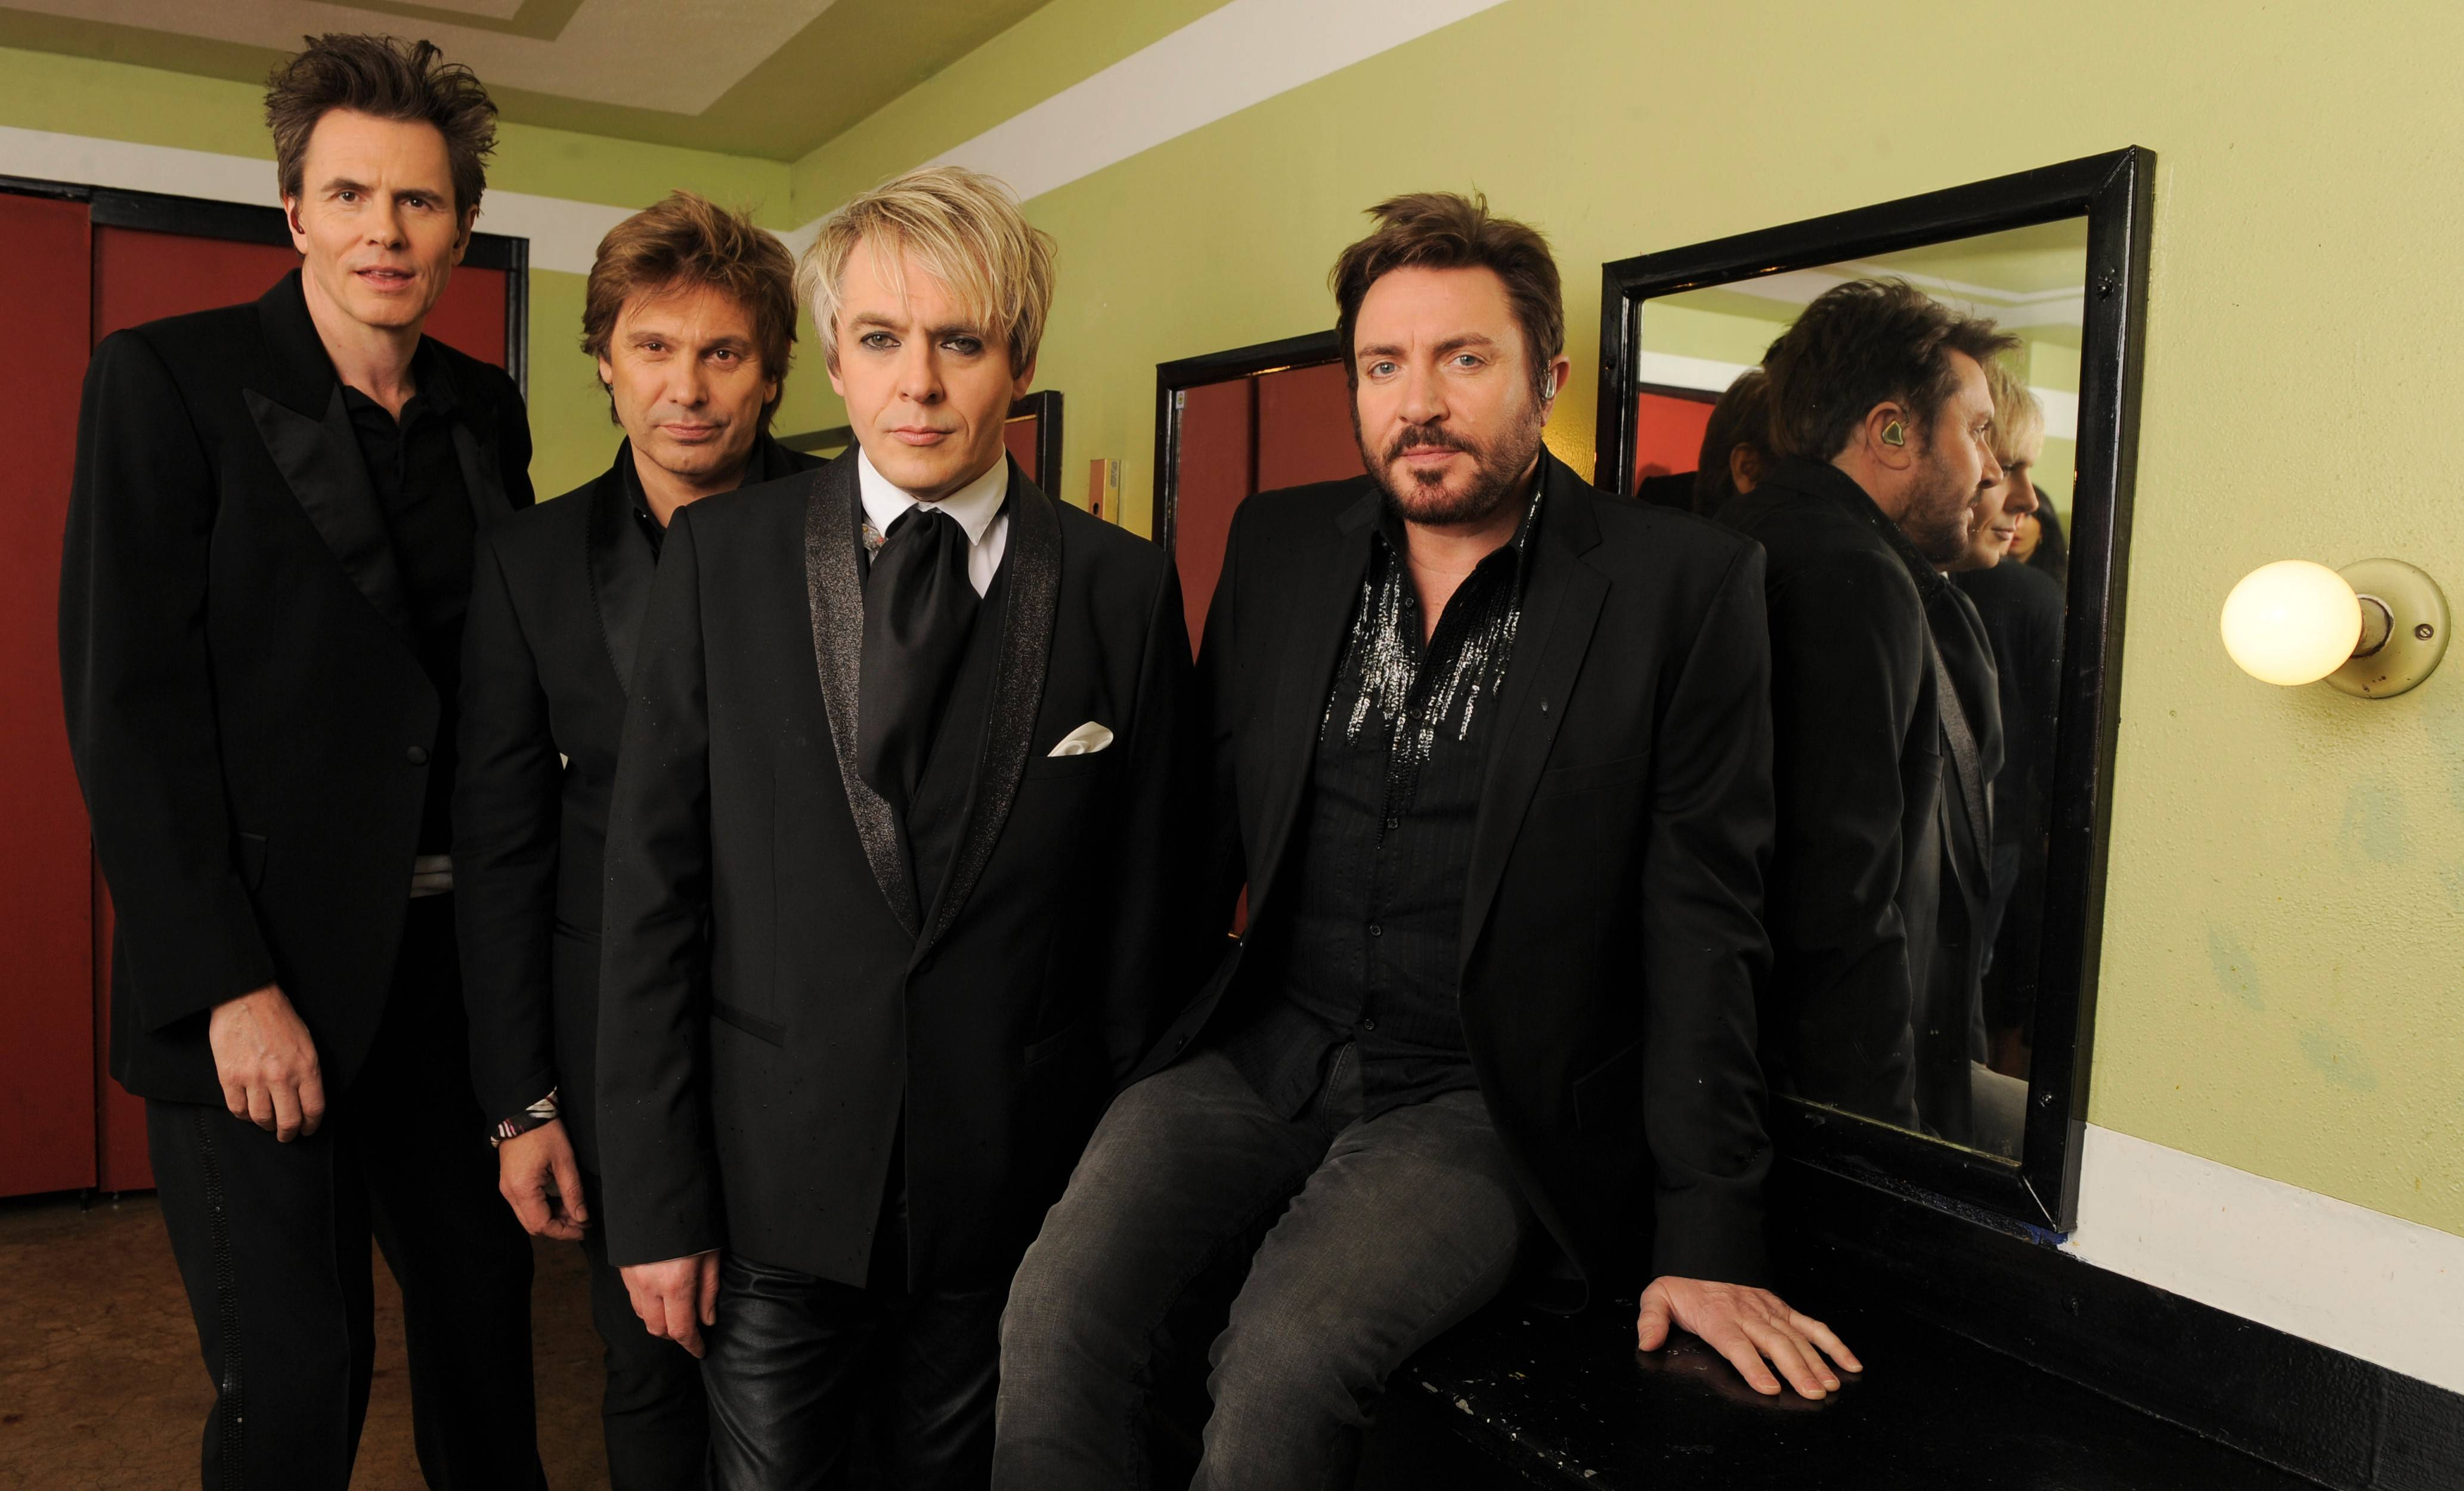 The band Duran Duran — featuring John Taylor, Roger Taylor, Nick Rhodes and Simon Le Bon — is suing a Glenview-based fan club management company.